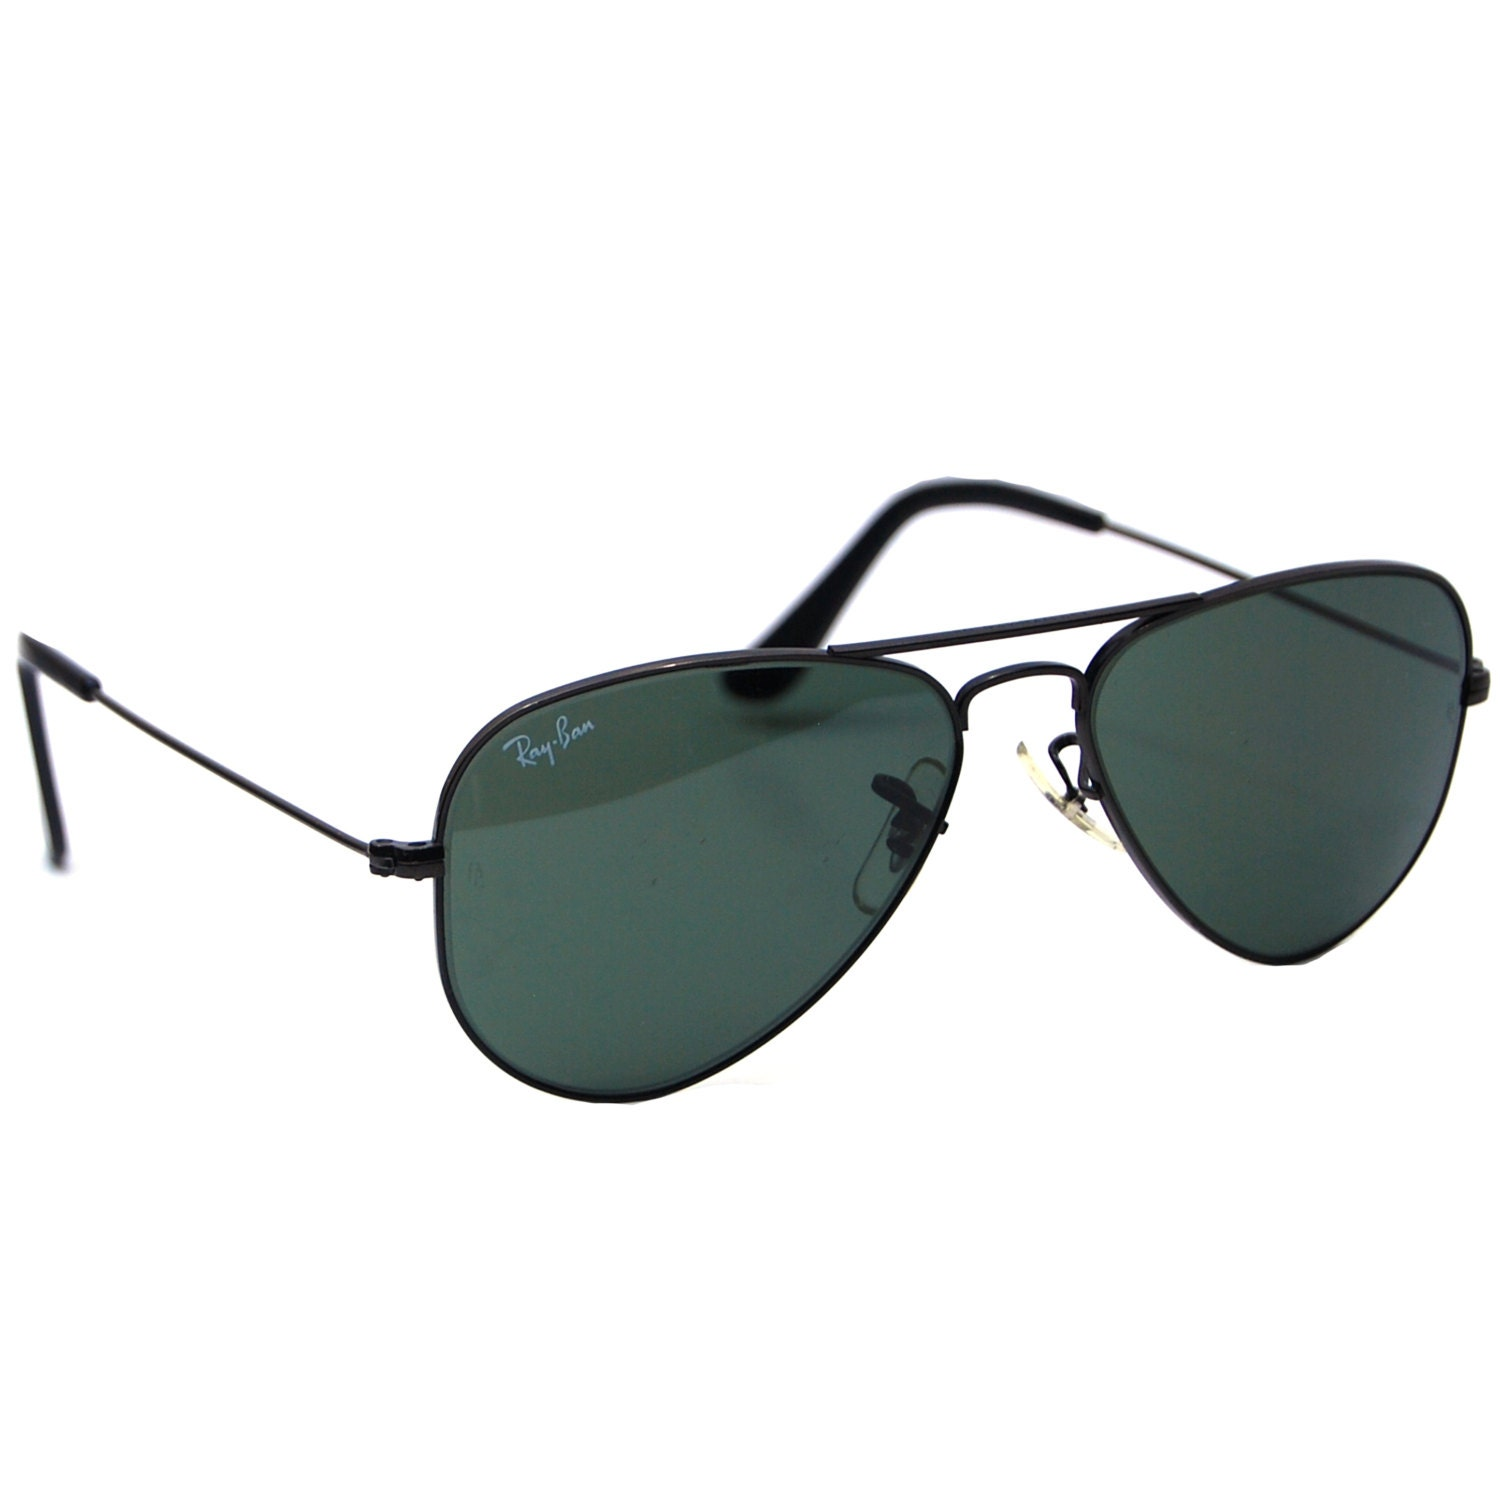 2784254006f Bausch   Lomb Ray Ban Glasses